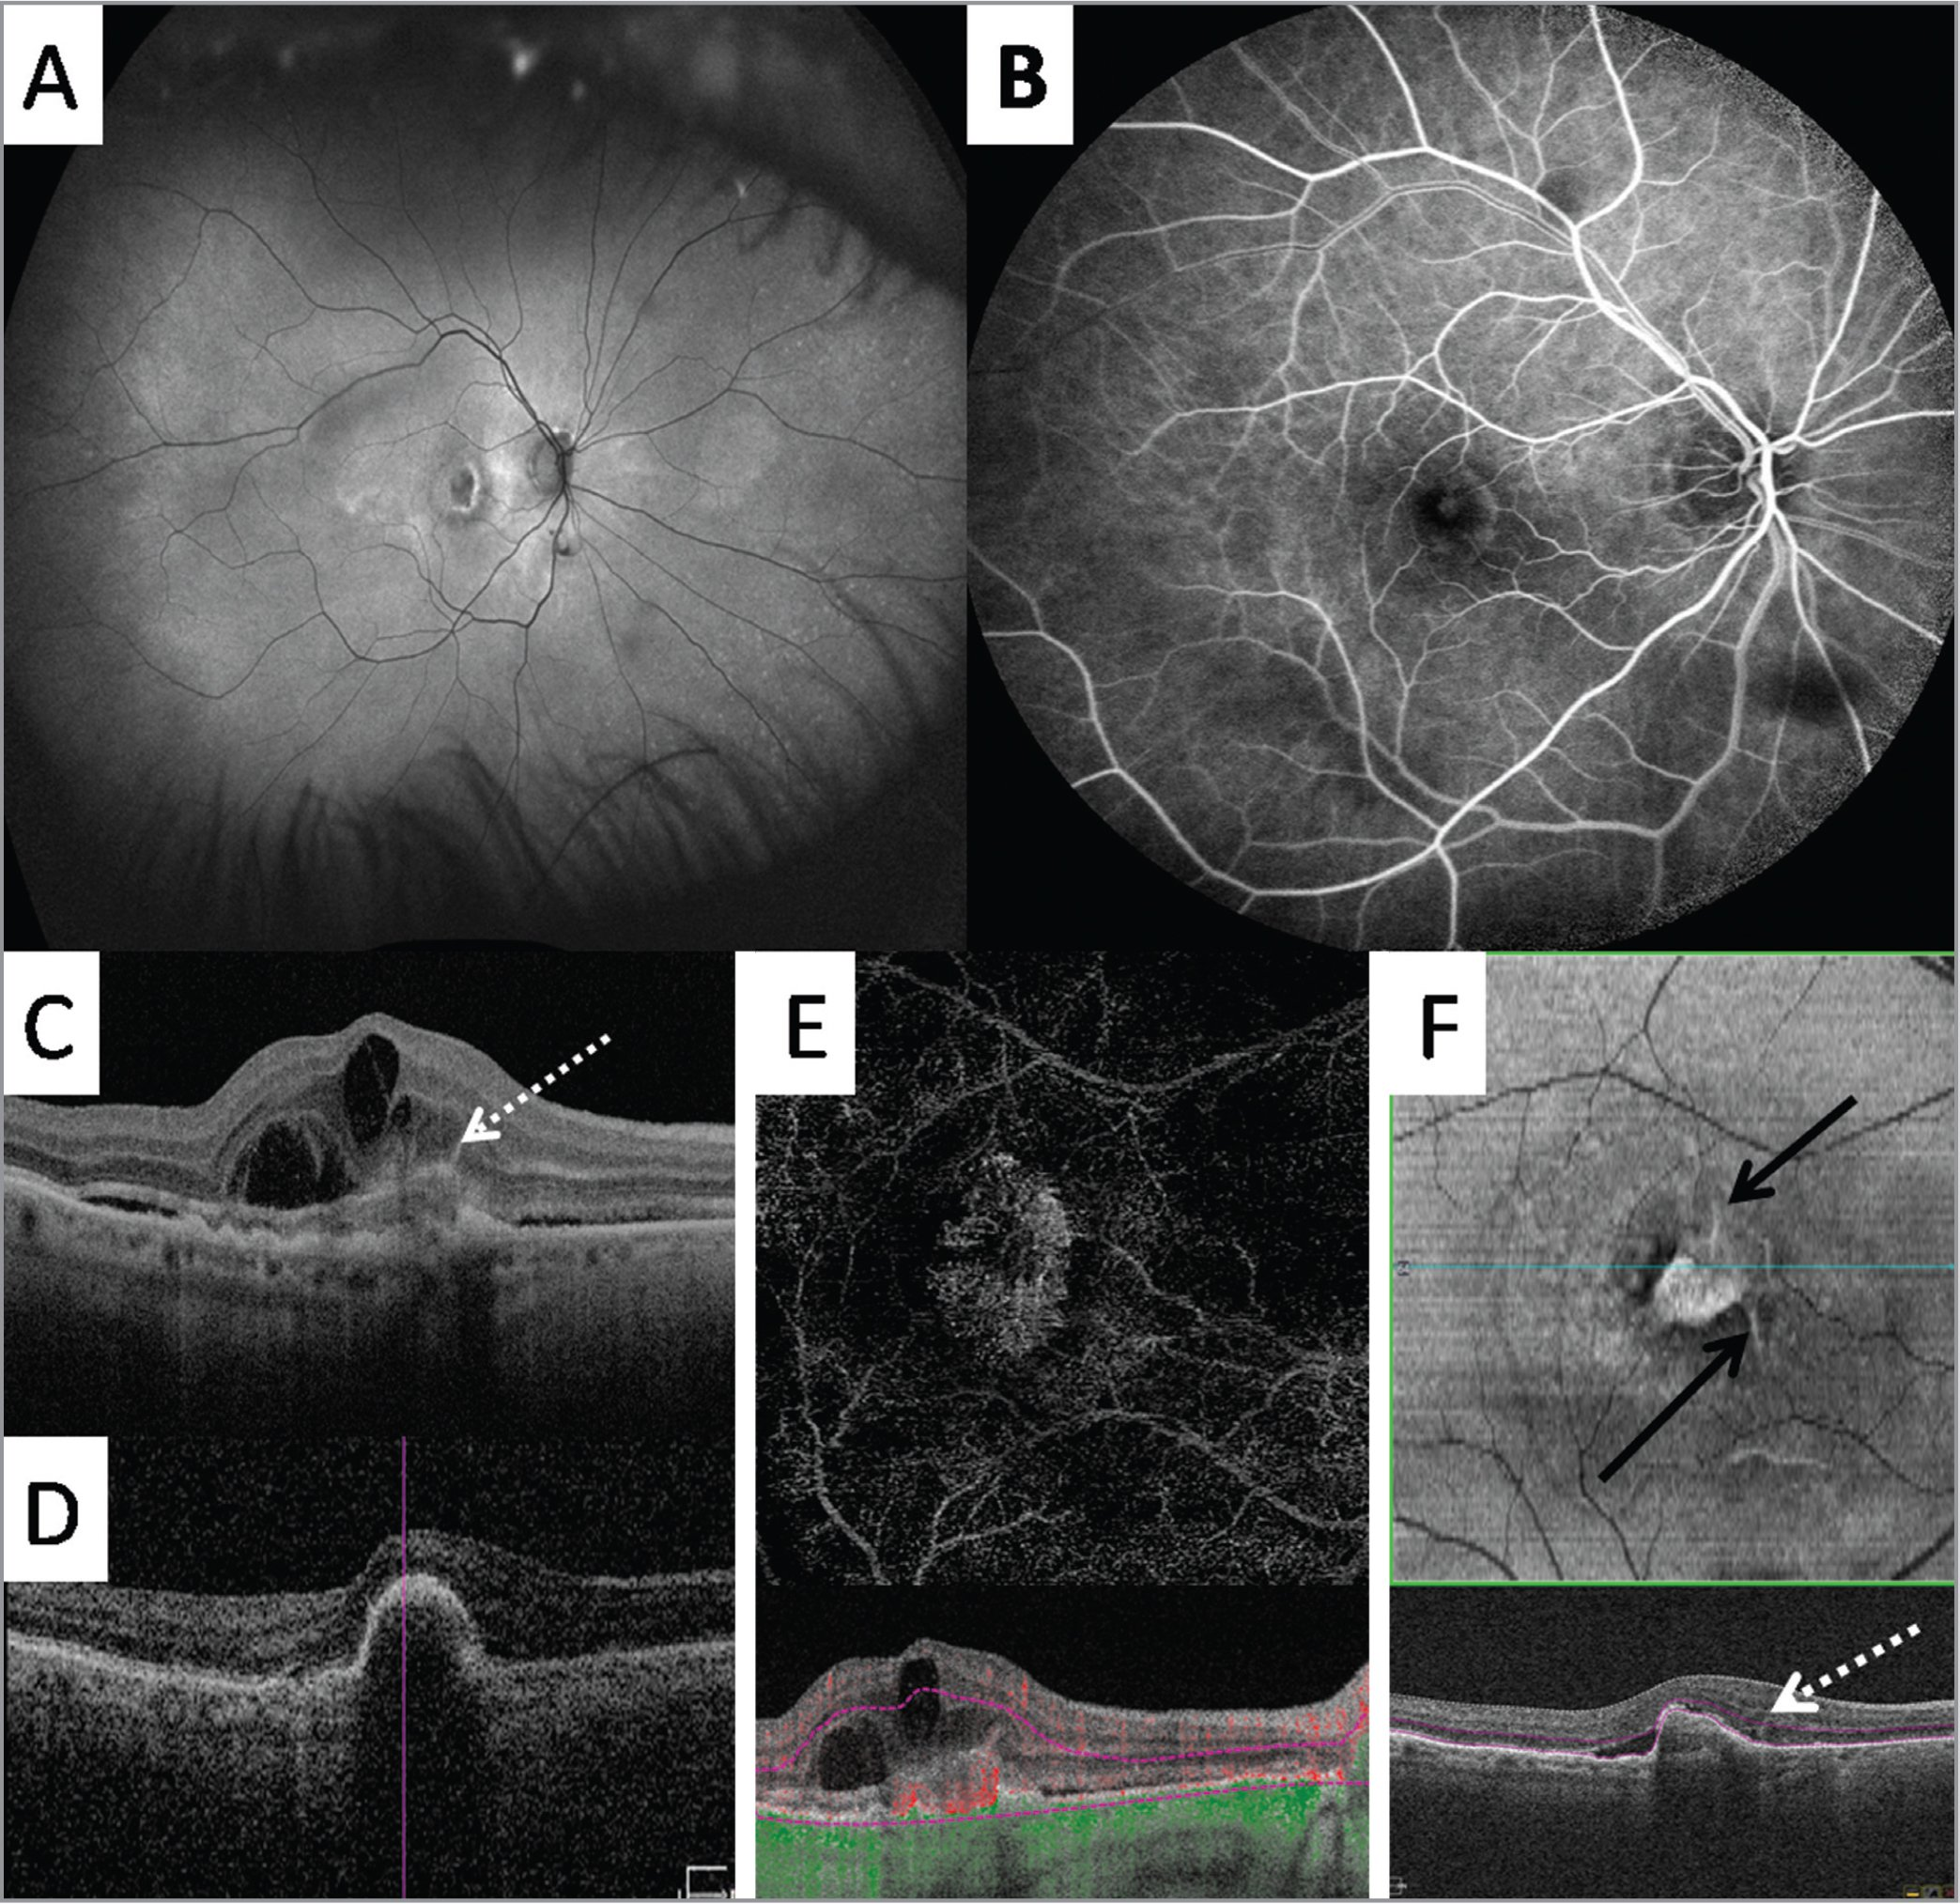 "Fundus autofluorescence (A), fluorescein angiography (B), optical coherence tomography (OCT) (C, D), en face OCT angiography (OCTA) (E), and en face structural OCT (F) images from an 84-year-old man with type 2 CNV secondary to age-related macular degeneration. Linear extensions (ie, ""pitchfork"" sign) are noted with the baseline cross-sectional OCT (C, F, dashed arrow), and these resolved after intravitreal bevacizumab therapy (D). Note the evolution into a type 1 neovascular lesion (D). Type 2 CNV is present with en face OCTA (E). The hyperreflective spikes are more clearly identified with baseline en face OCT segmentation of the outer retina (solid arrows, F) in a radial or wreath-like pattern."